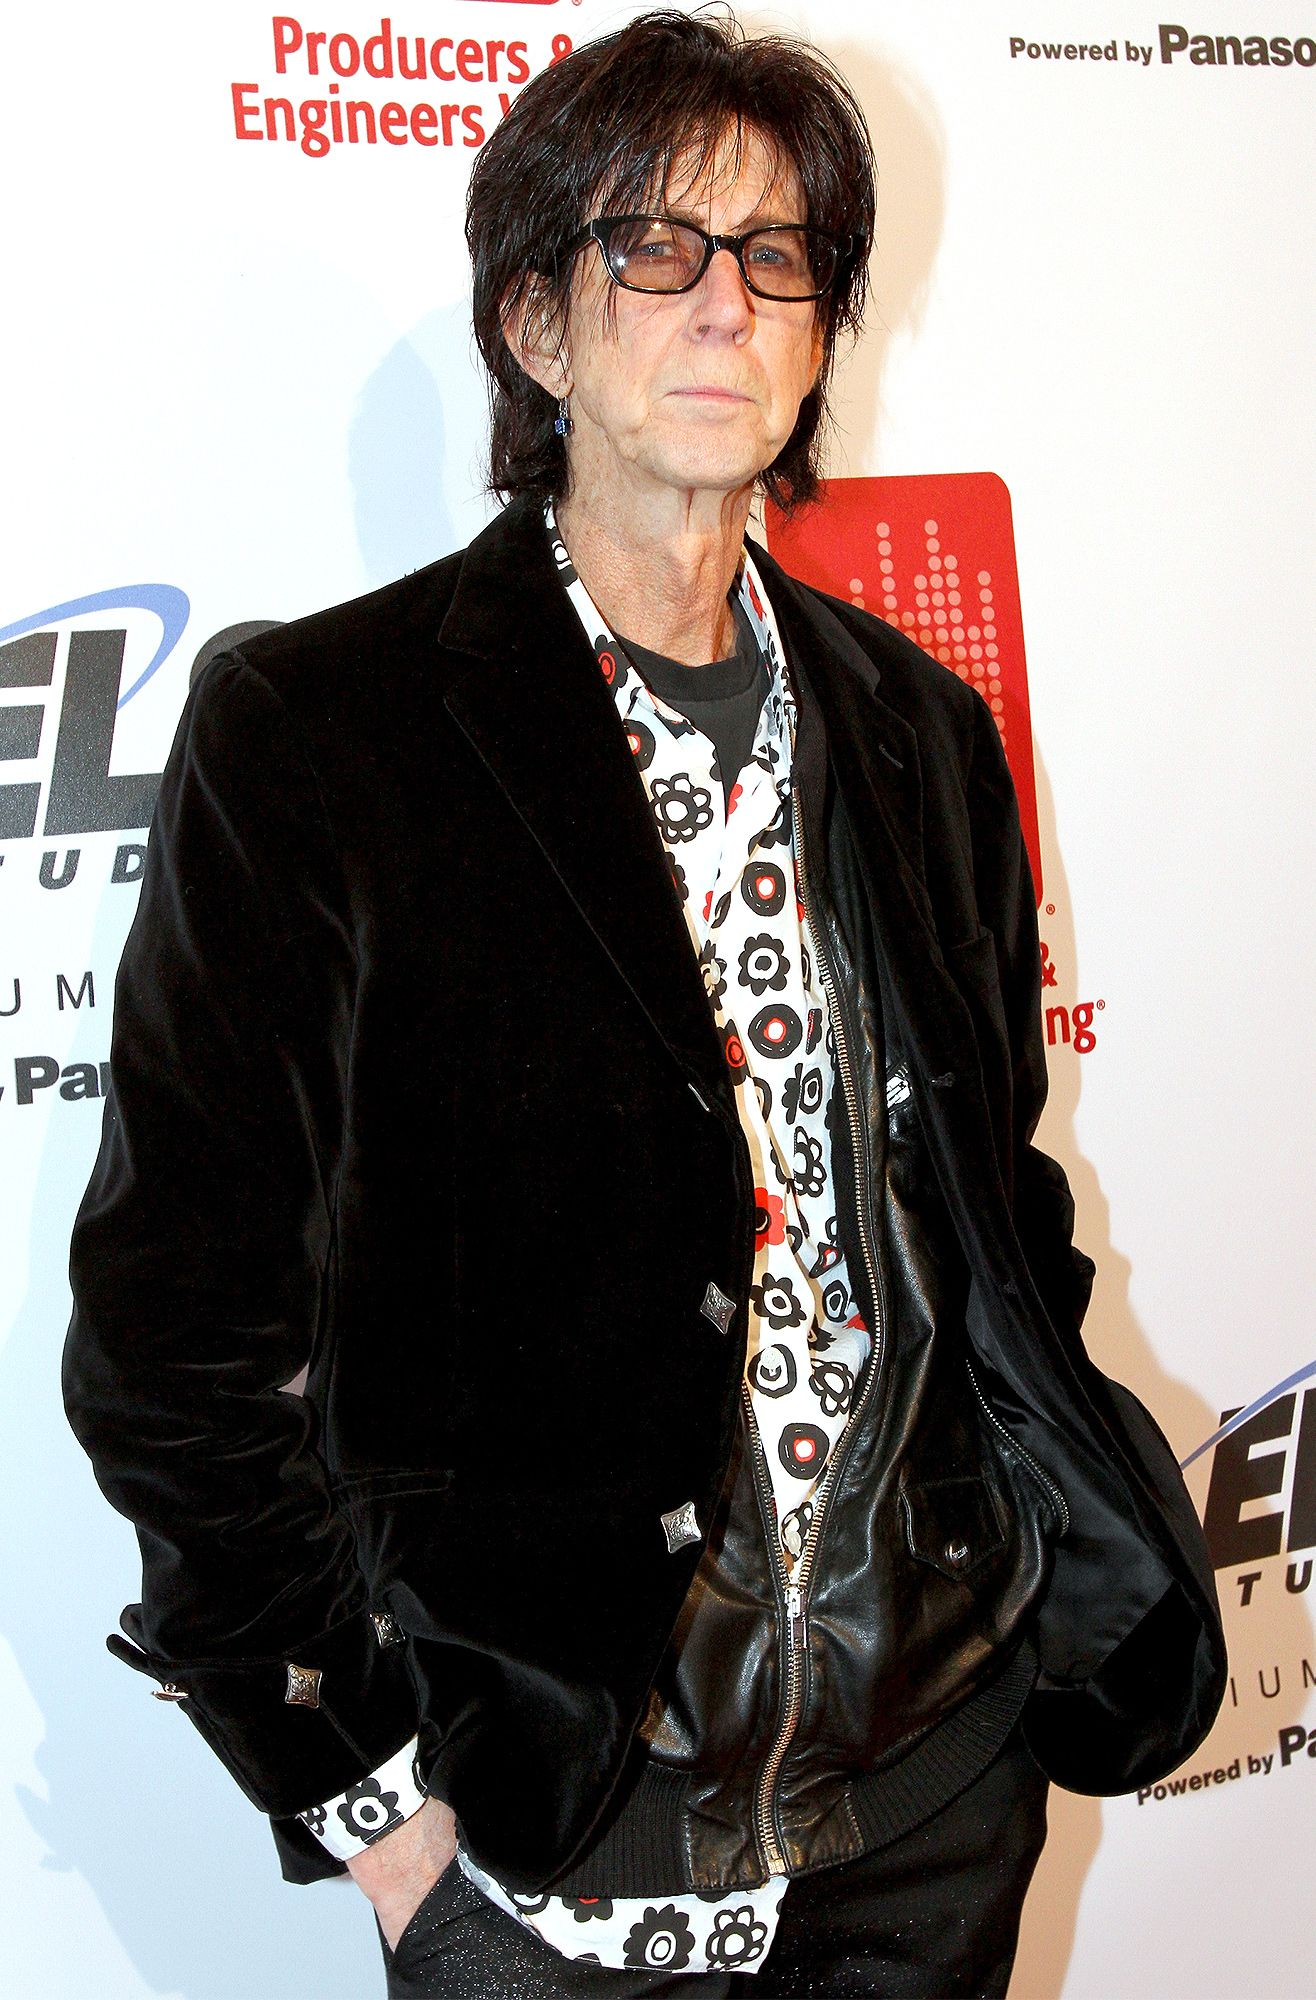 Ric Ocasek, The Cars Frontman and Rock and Roll Hall of Famer, Dies at 75